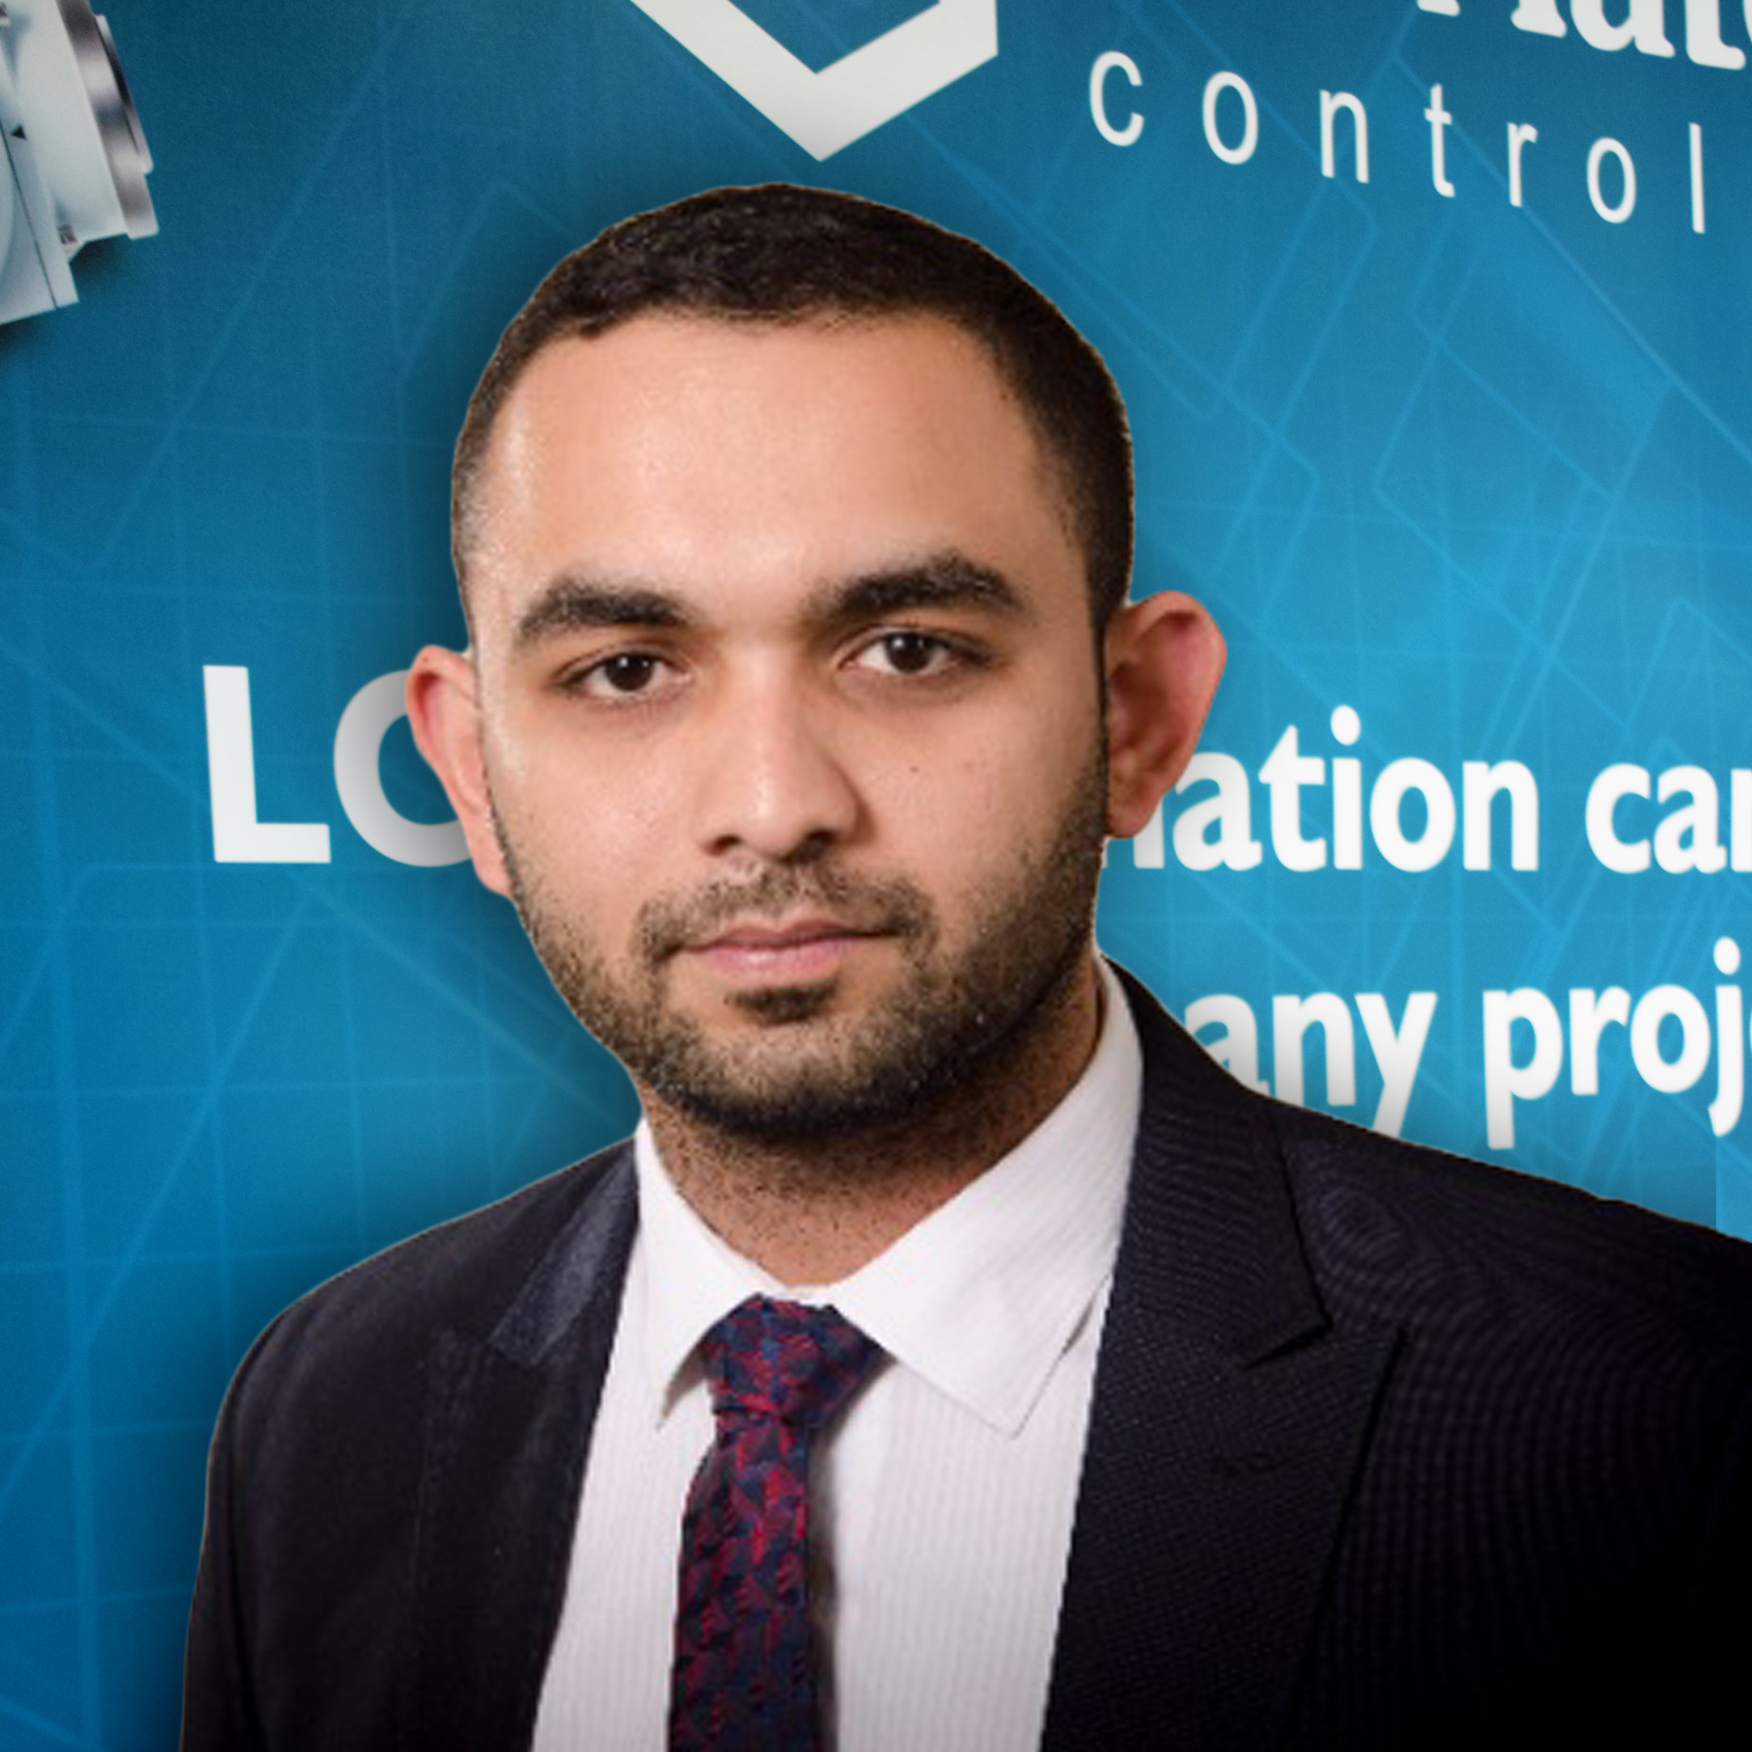 Adi Shah LC Automation Field Sales Engineer